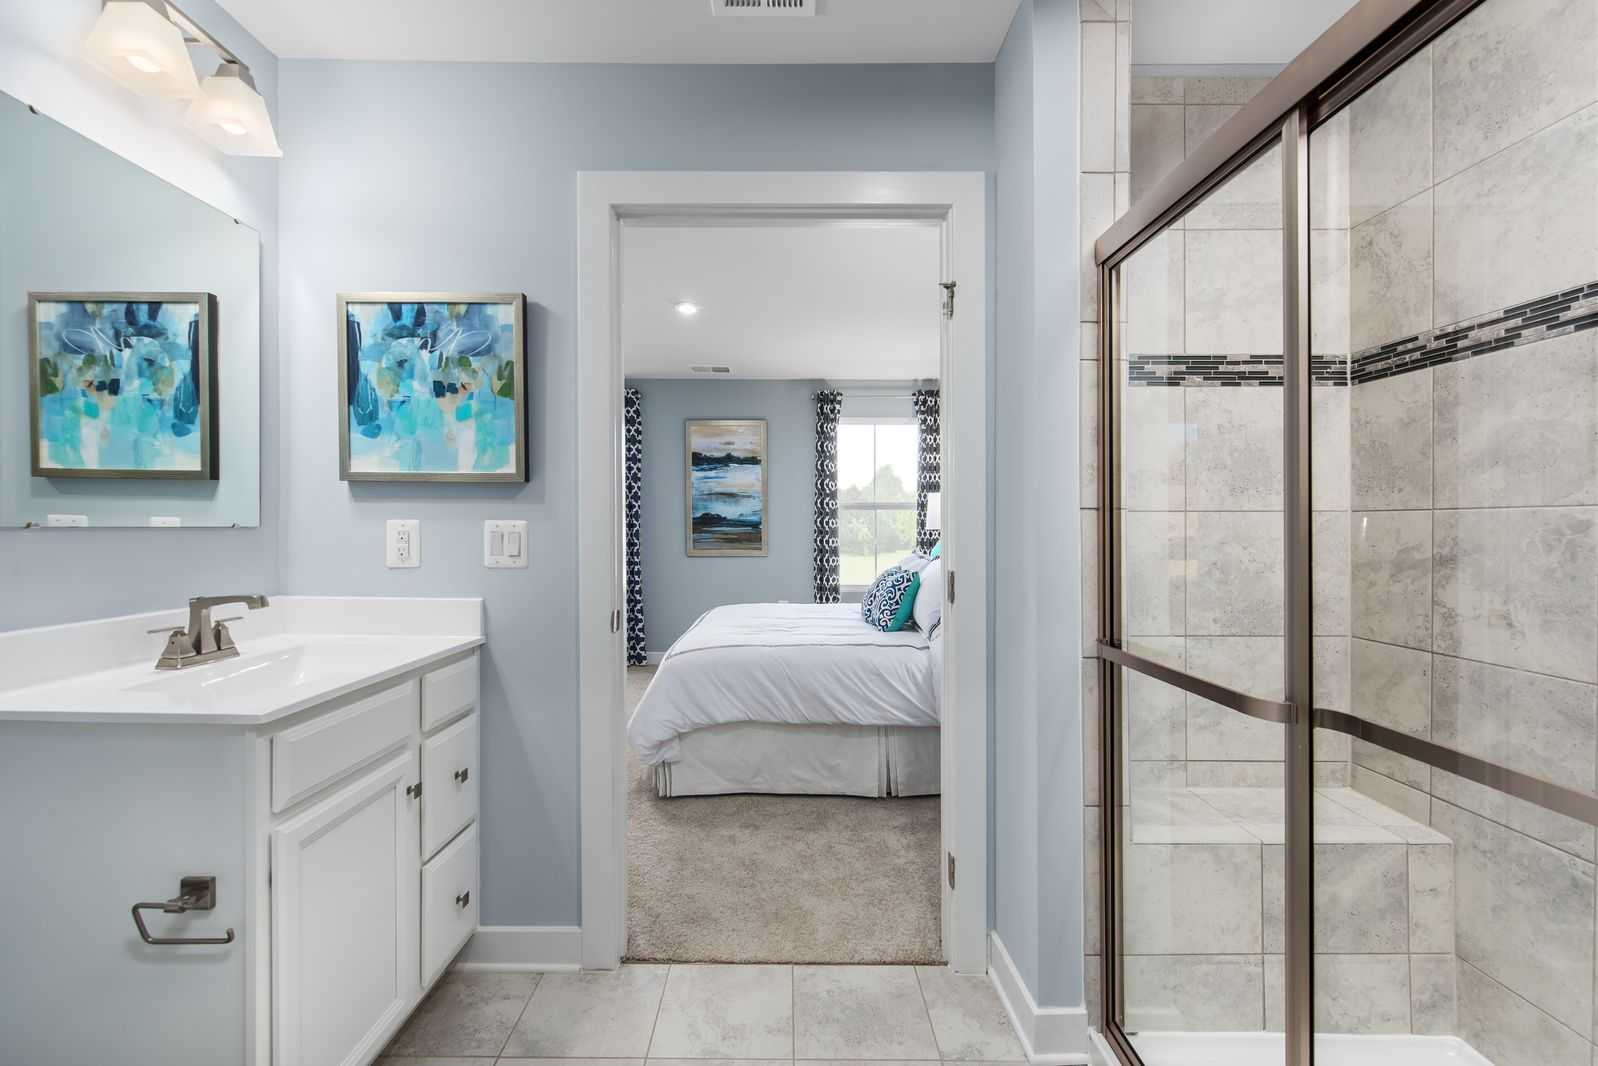 Bathroom featured in the Bahama By Ryan Homes in Rochester, NY